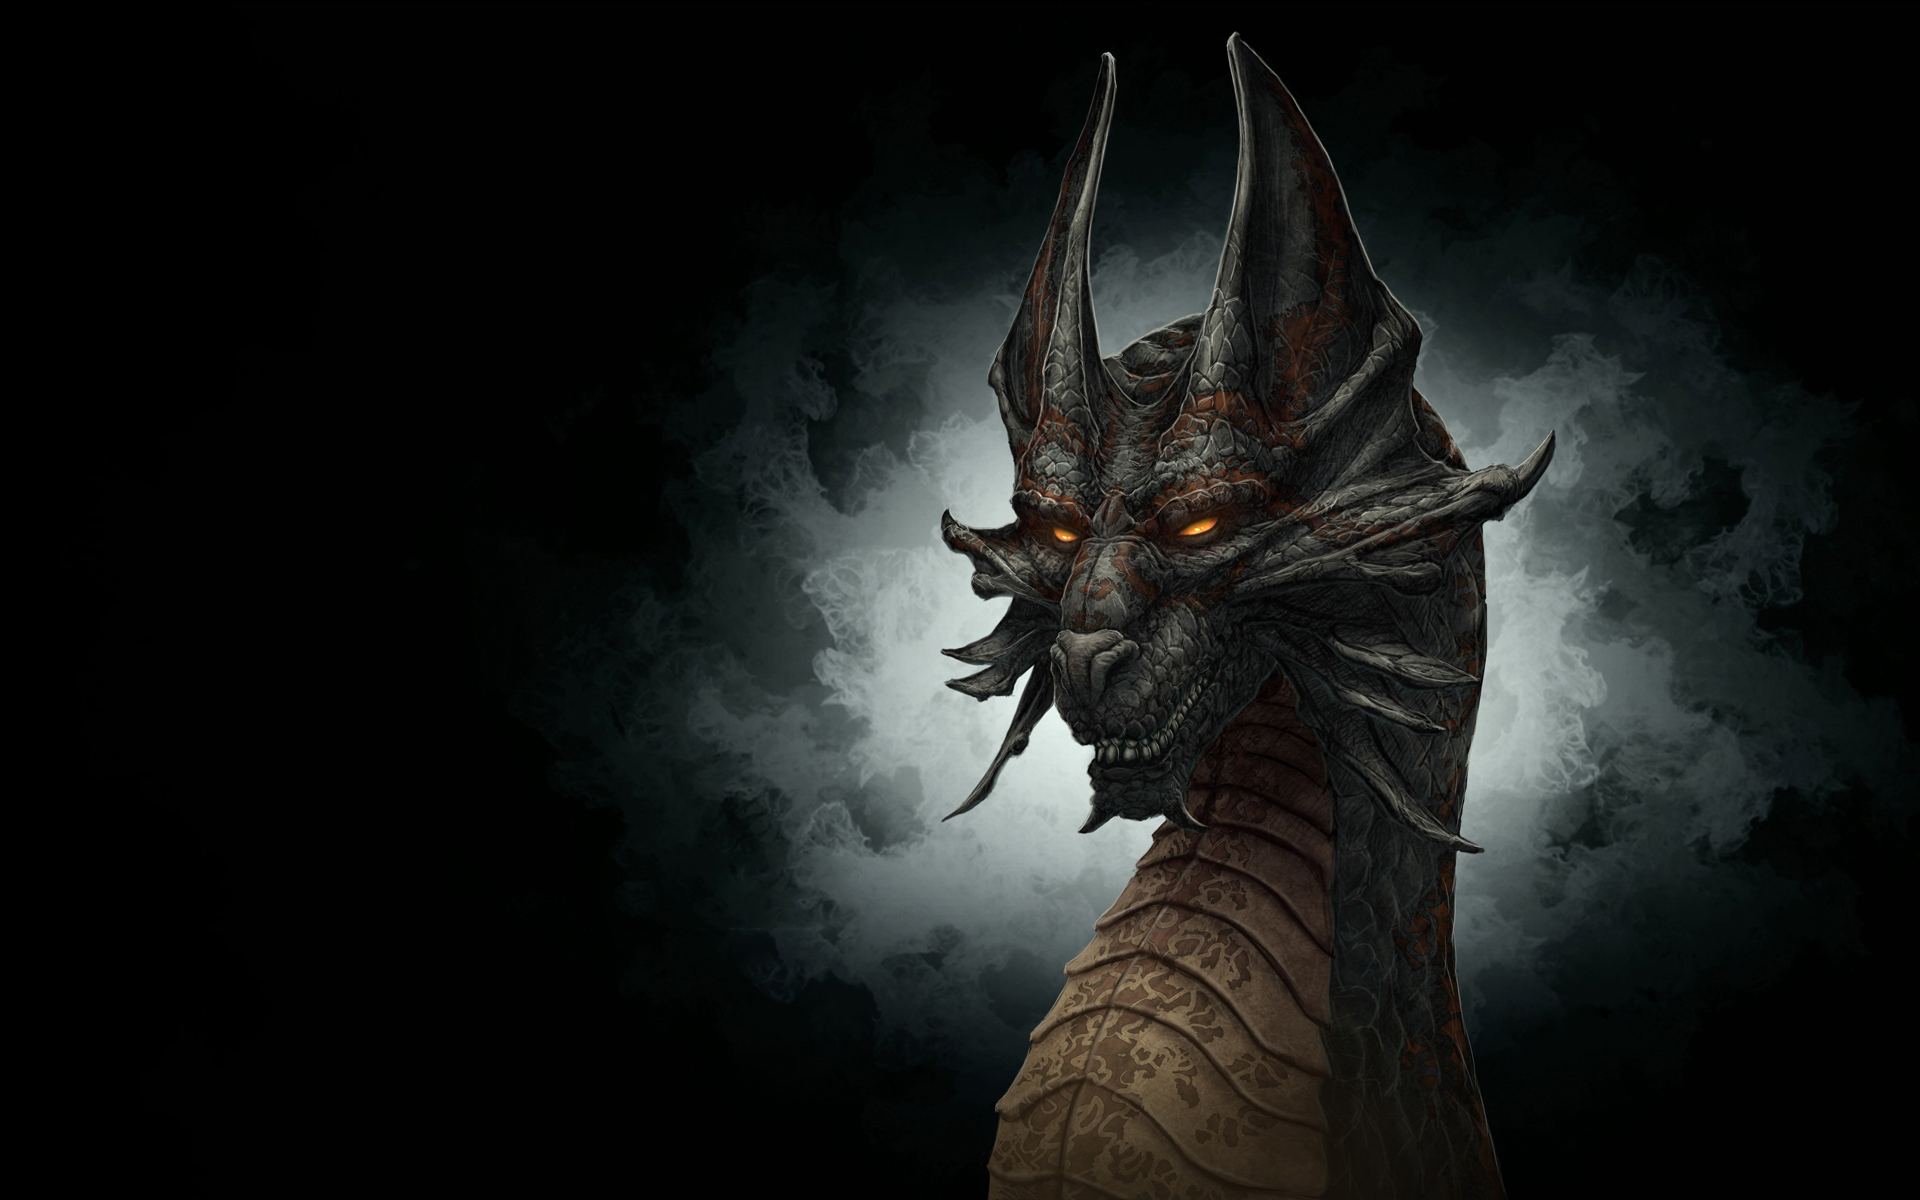 Top 50 HD Dragon Wallpapers Images Backgrounds Desktop 1920x1200